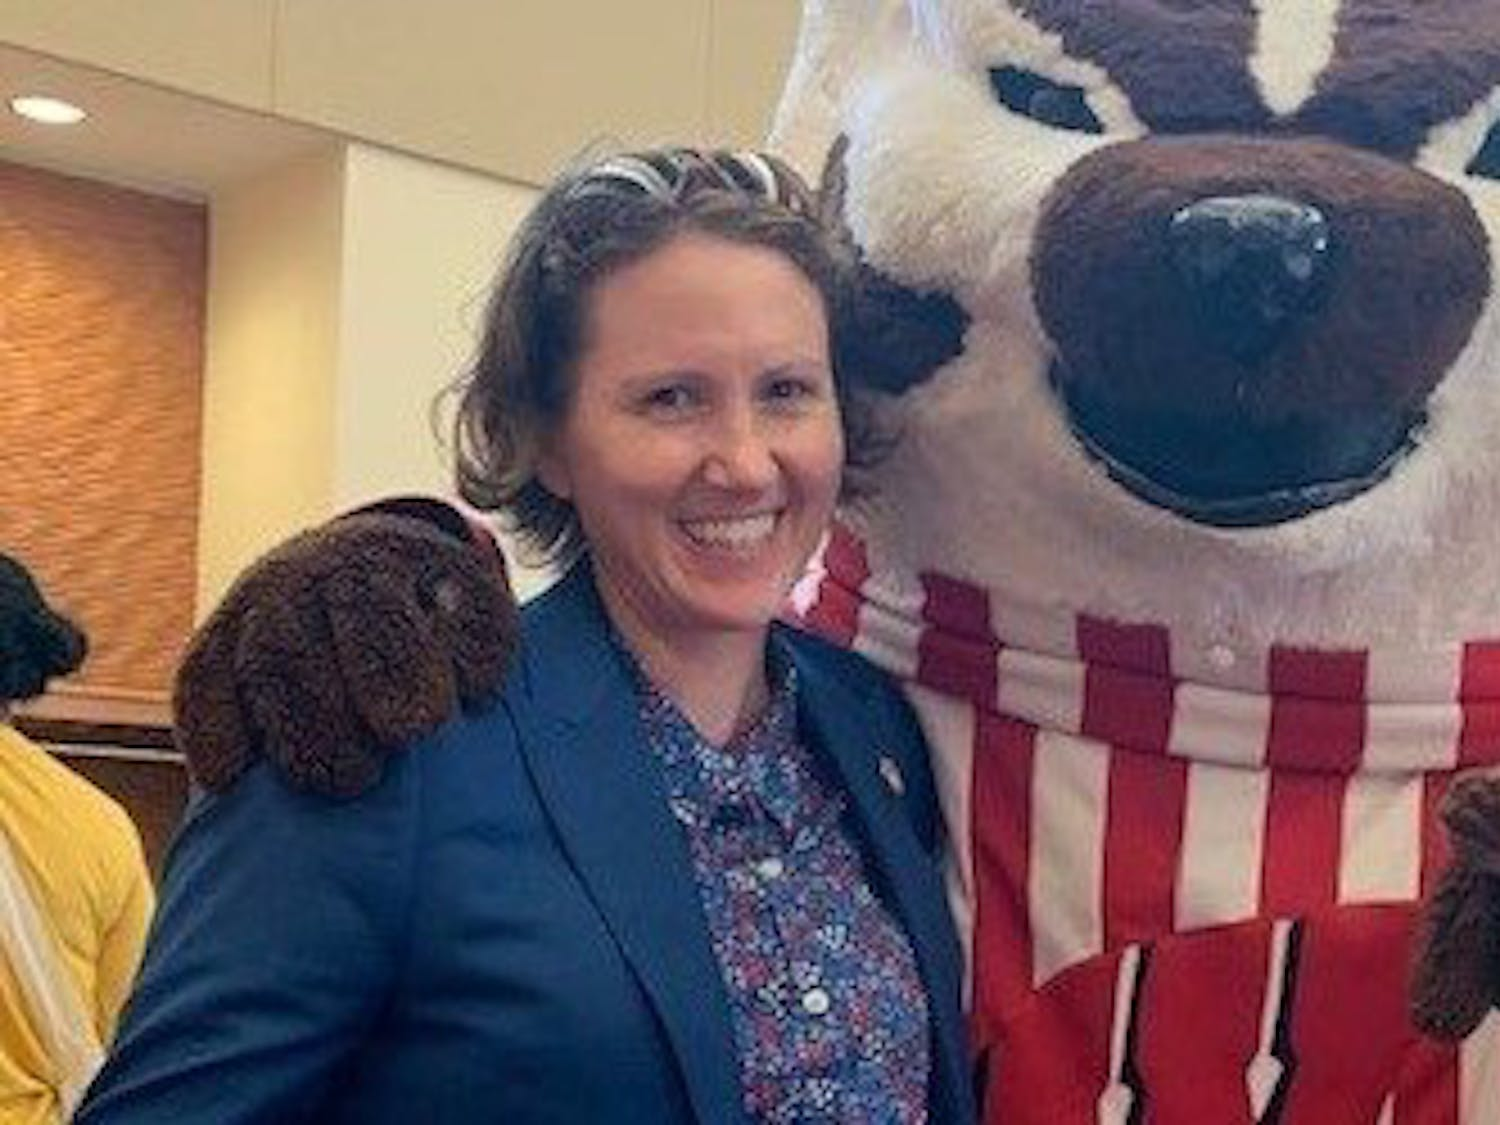 Christina Olstad, the new dean of students at UW-Madison, takes the lead to enhance inclusiveness back to campus.